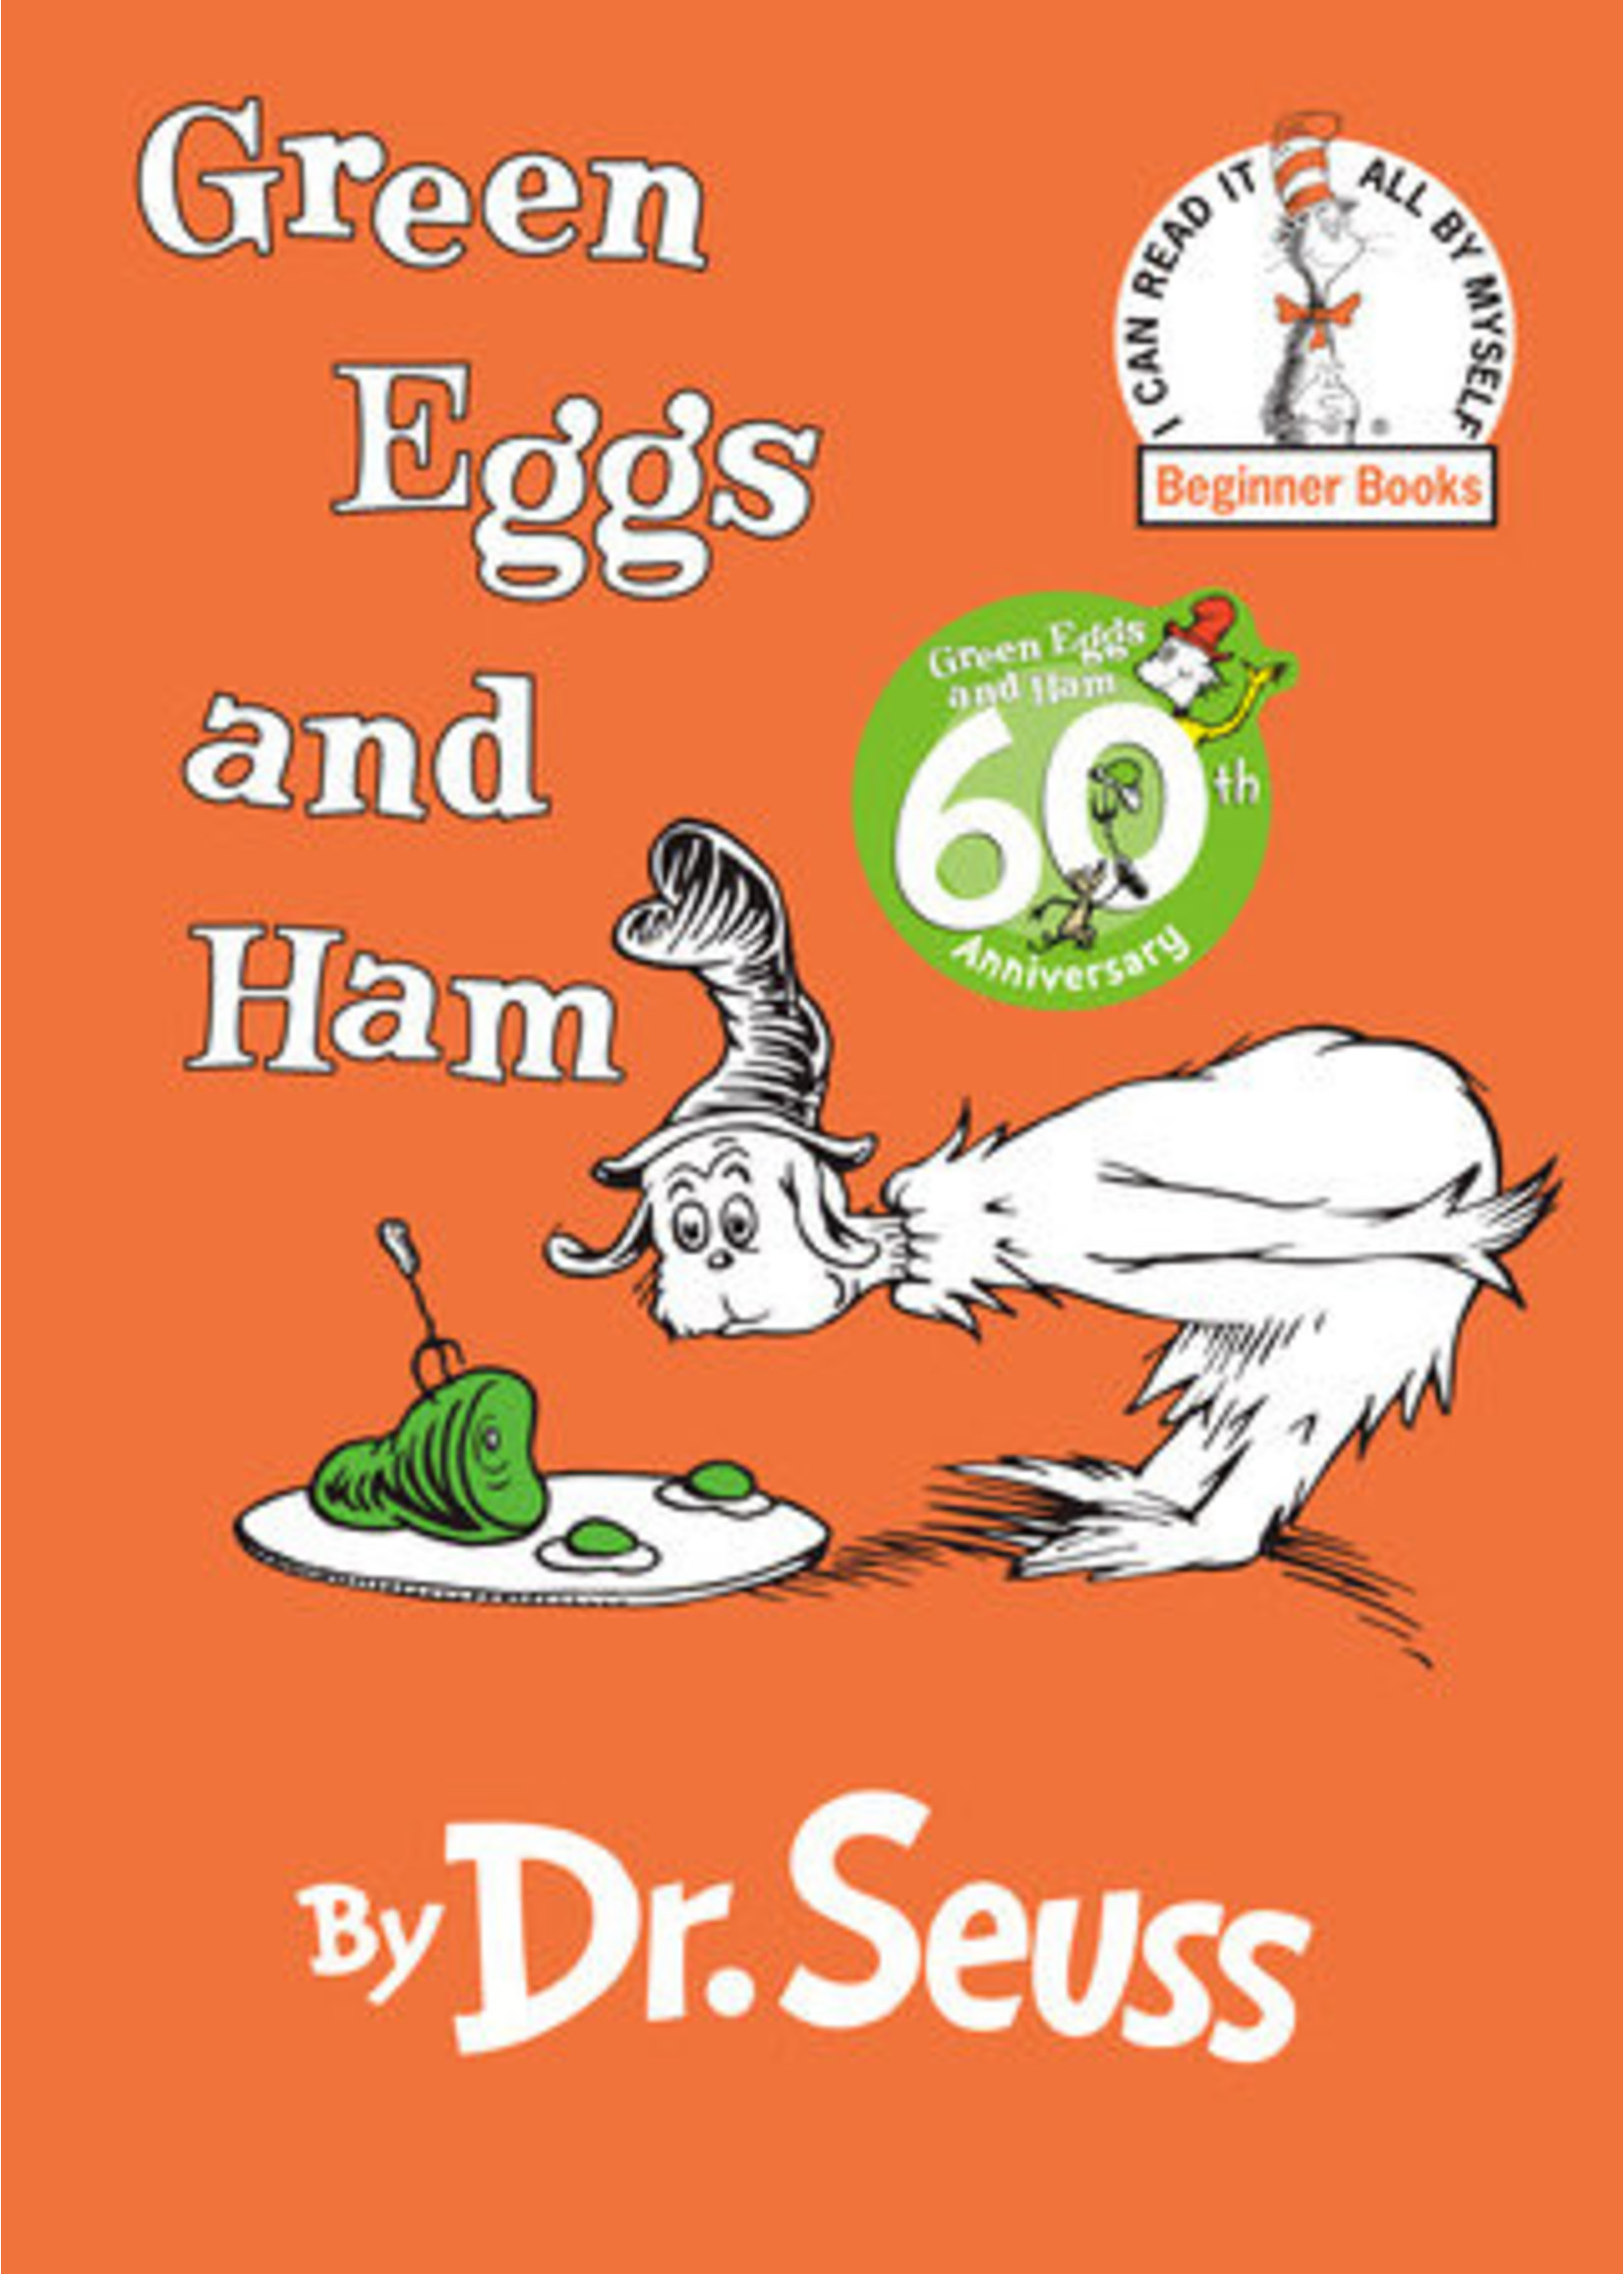 Penguin Dr. Seuss - Green Eggs and Ham